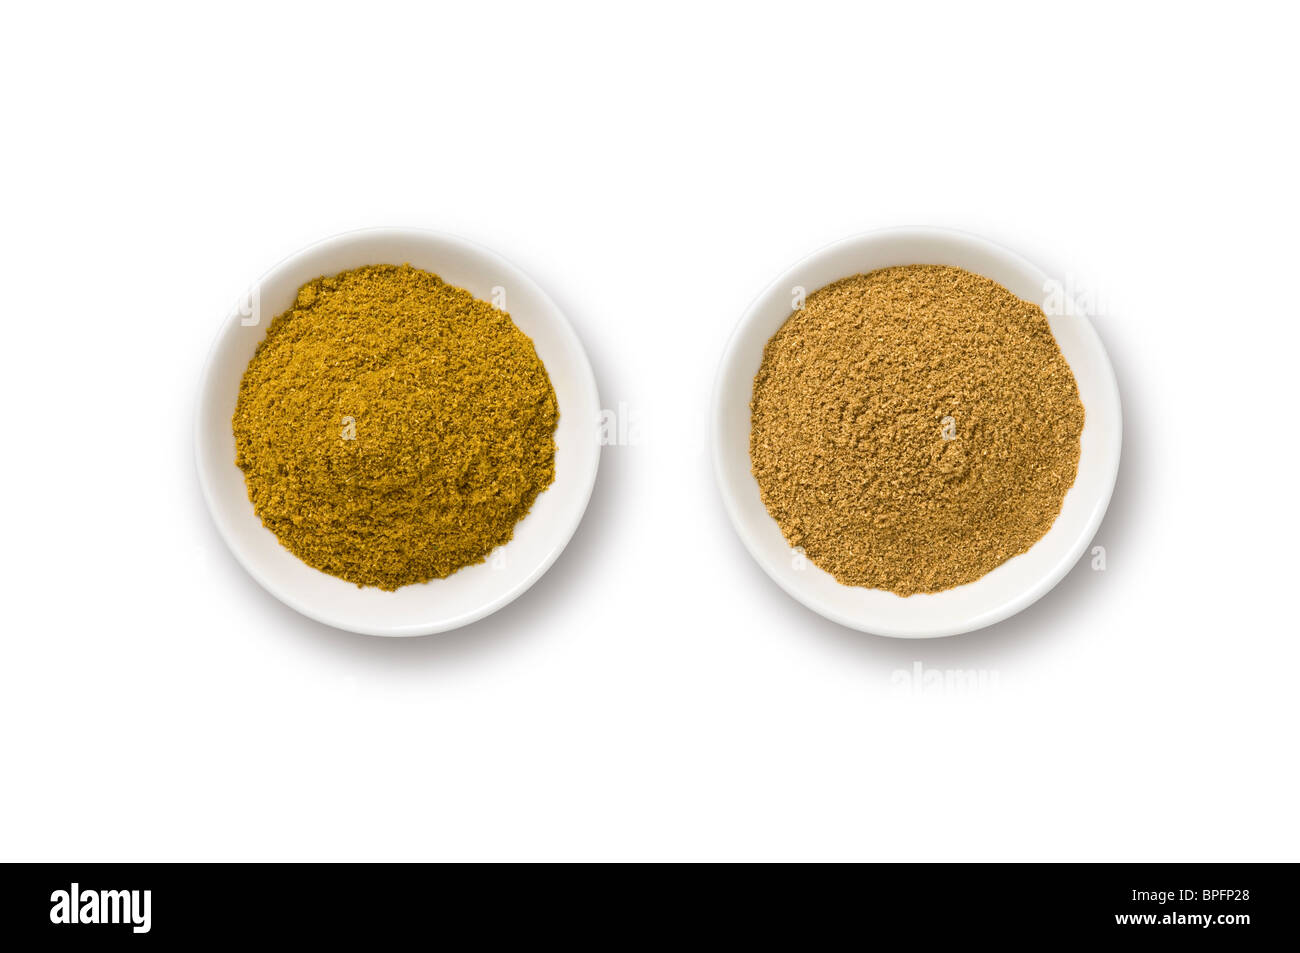 Madras Curry Stock Photos & Madras Curry Stock Images - Alamy